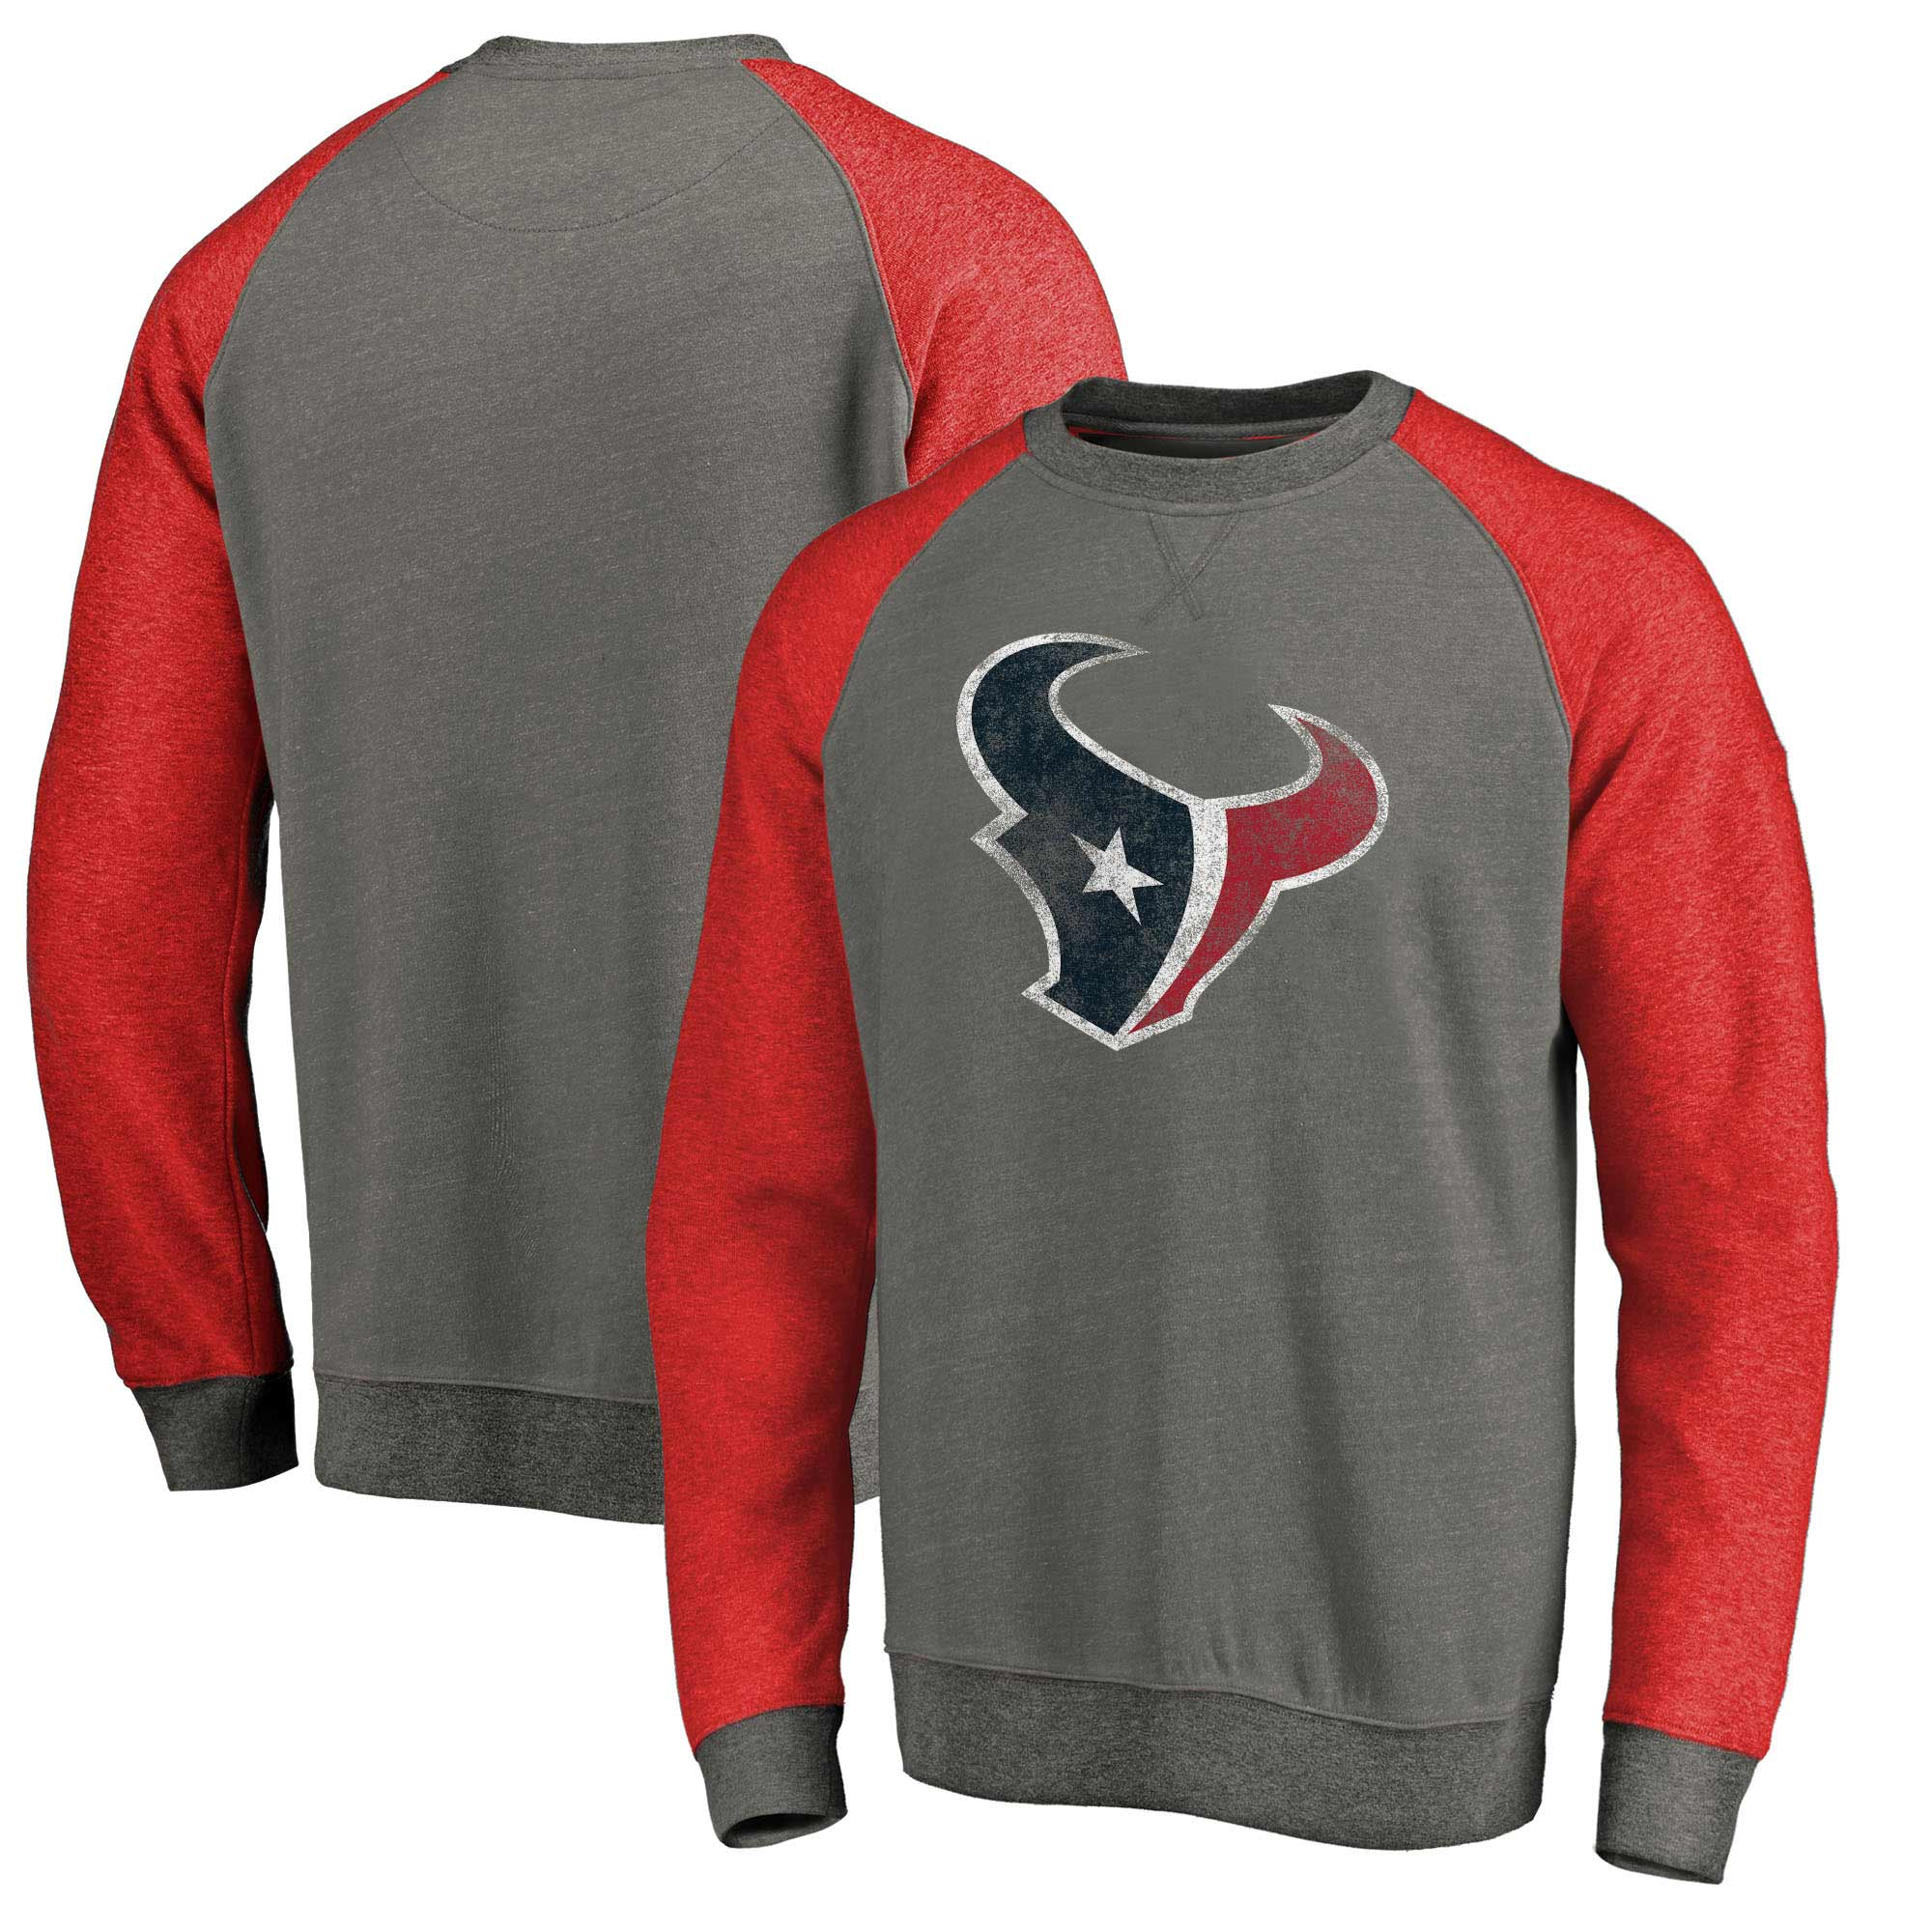 Houston Texans NFL Pro Line by Fanatics Branded Distressed Team Tri-Blend Pullover Sweatshirt - Heathered Gray/Red